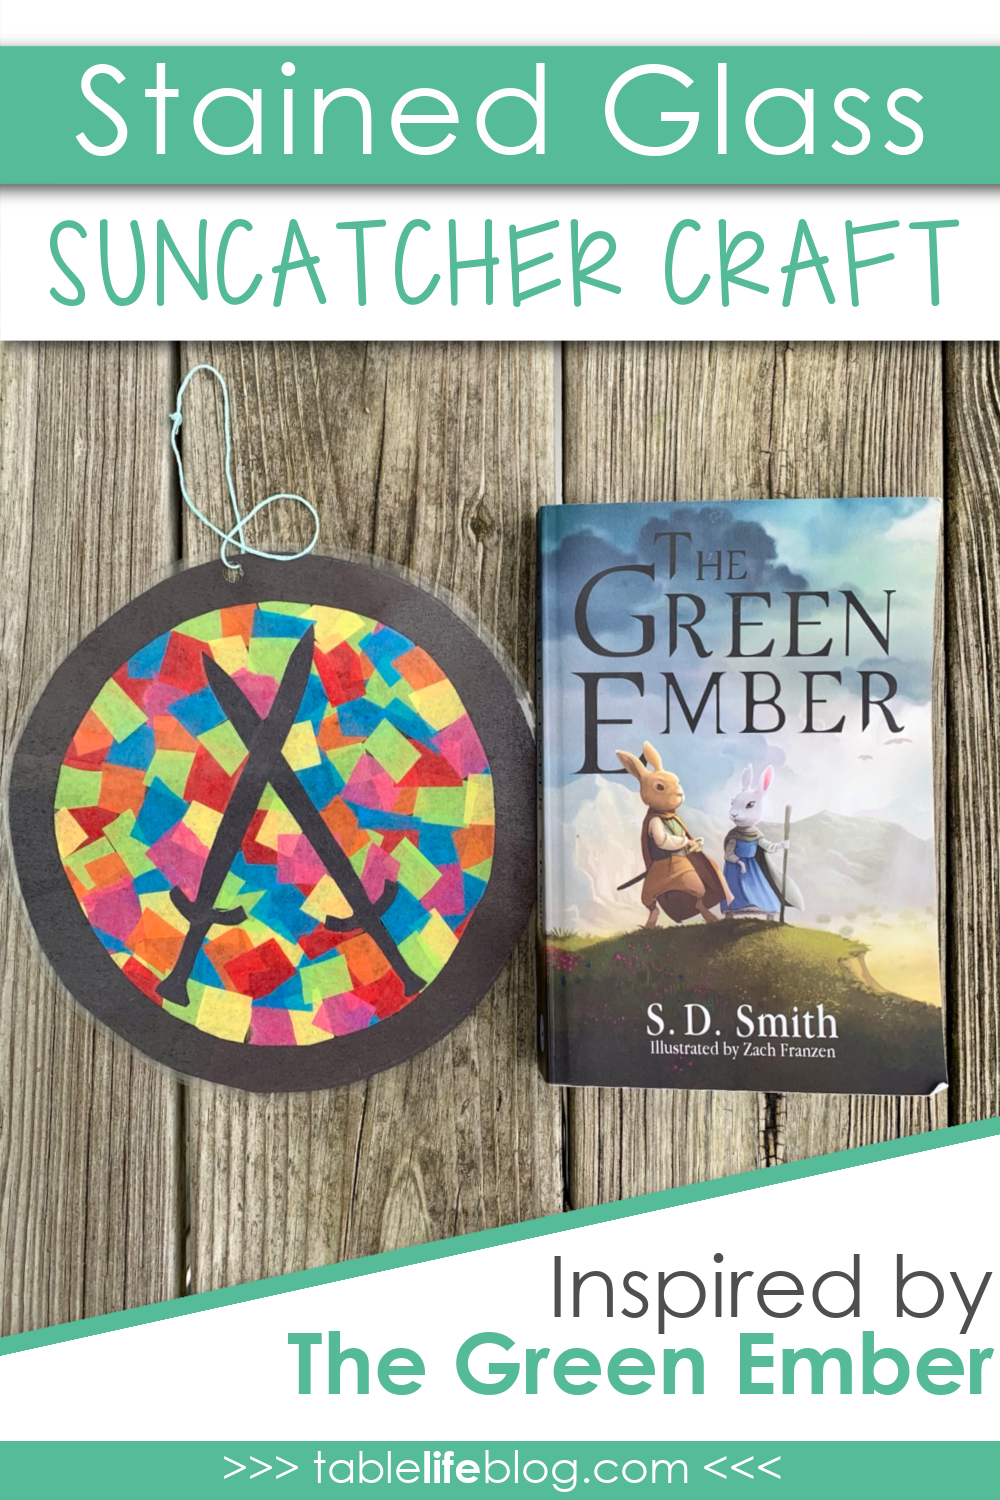 Looking for an easy craft to do with your kids while you read The Green Ember together. Here's a fun stained glass suncatcher craft to add to your plans!